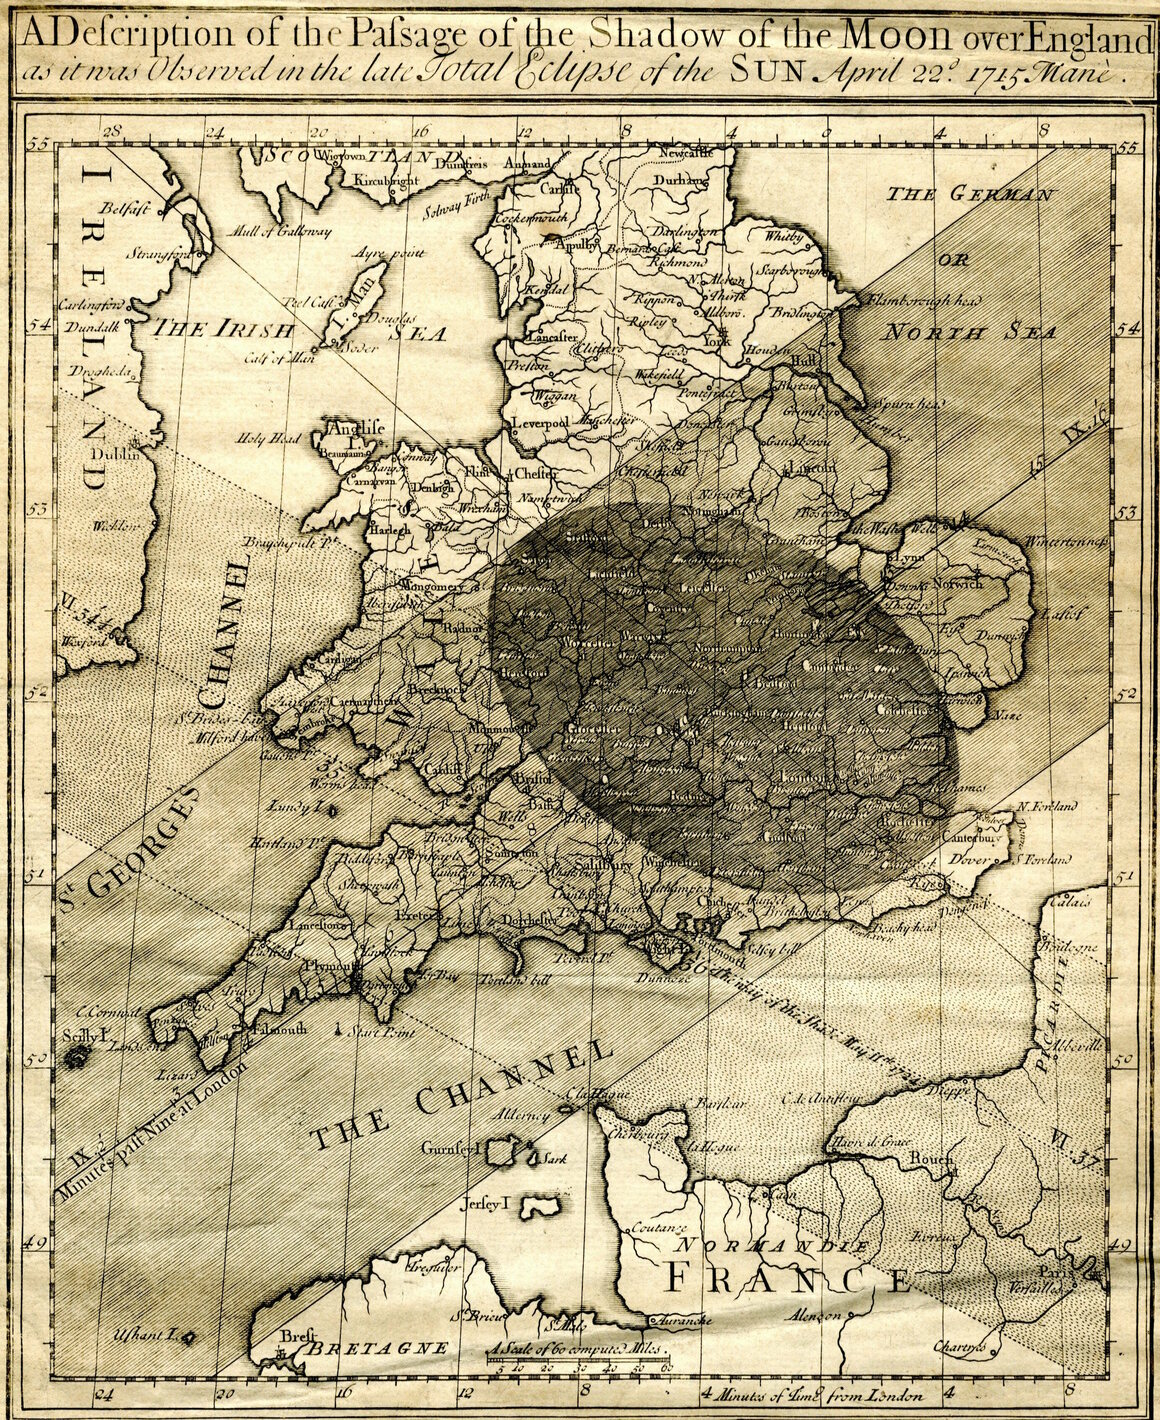 Halley's map of the eclipse of 1715.